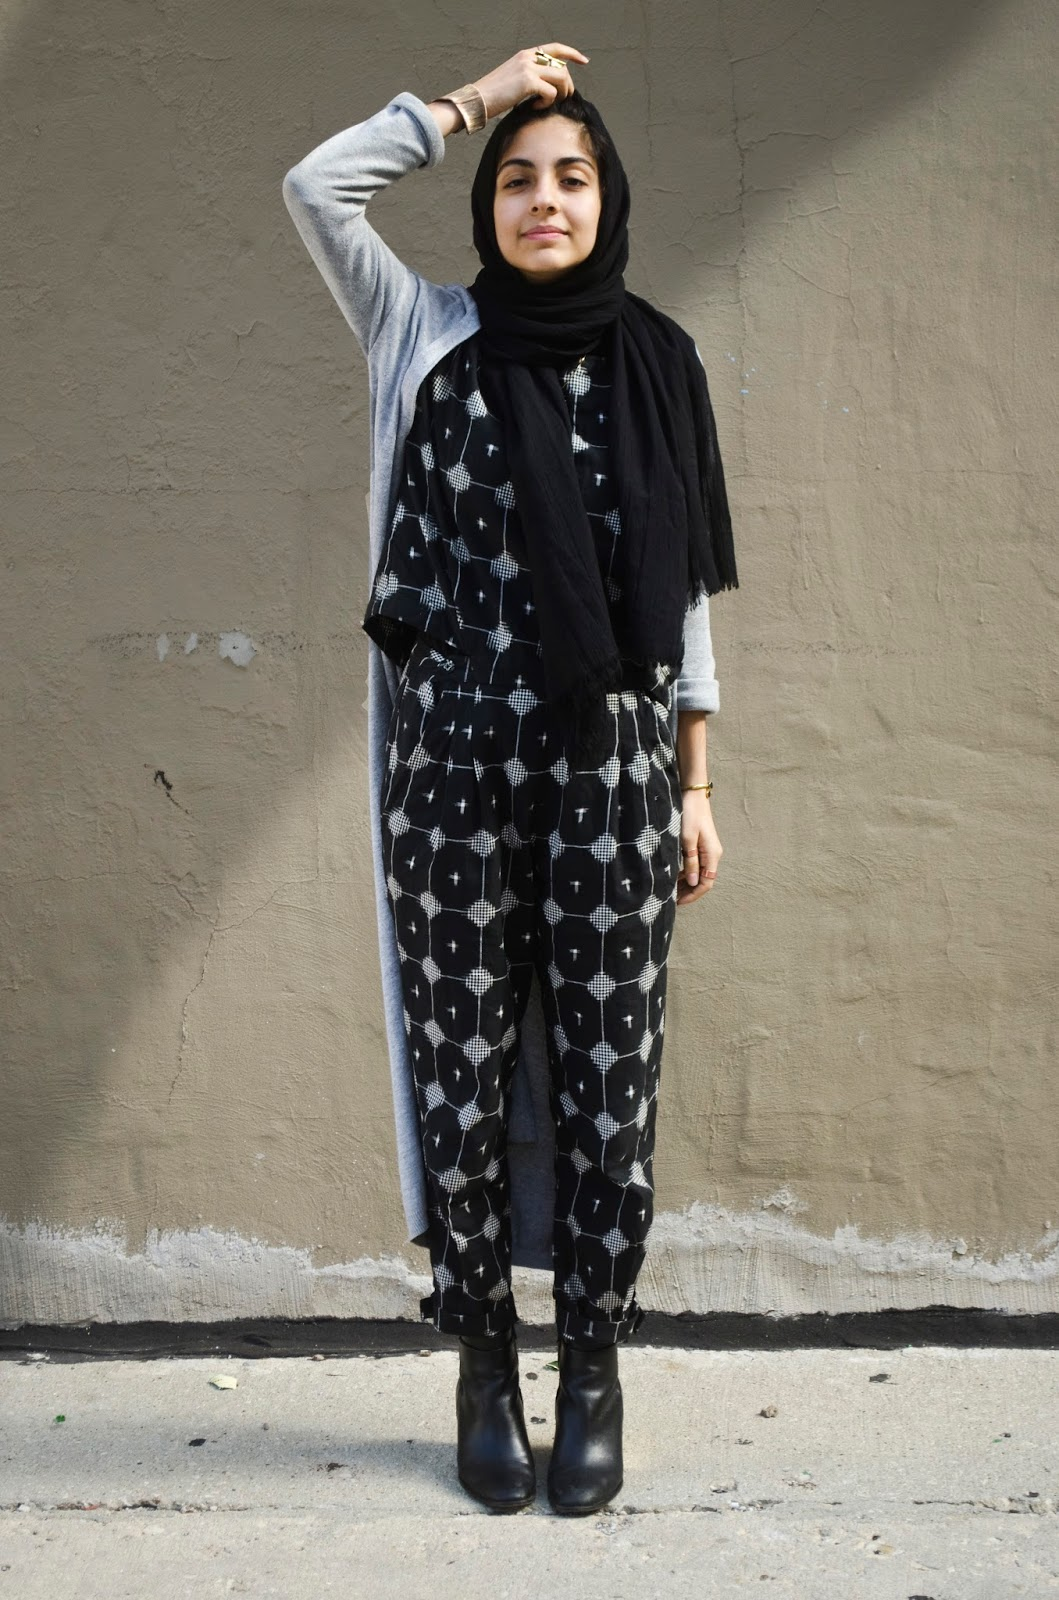 ethical fashion, ethical fashion blog, ethical jumpsuit, jumpsuit, ethical romper, muslim fashion, hijabi fashion